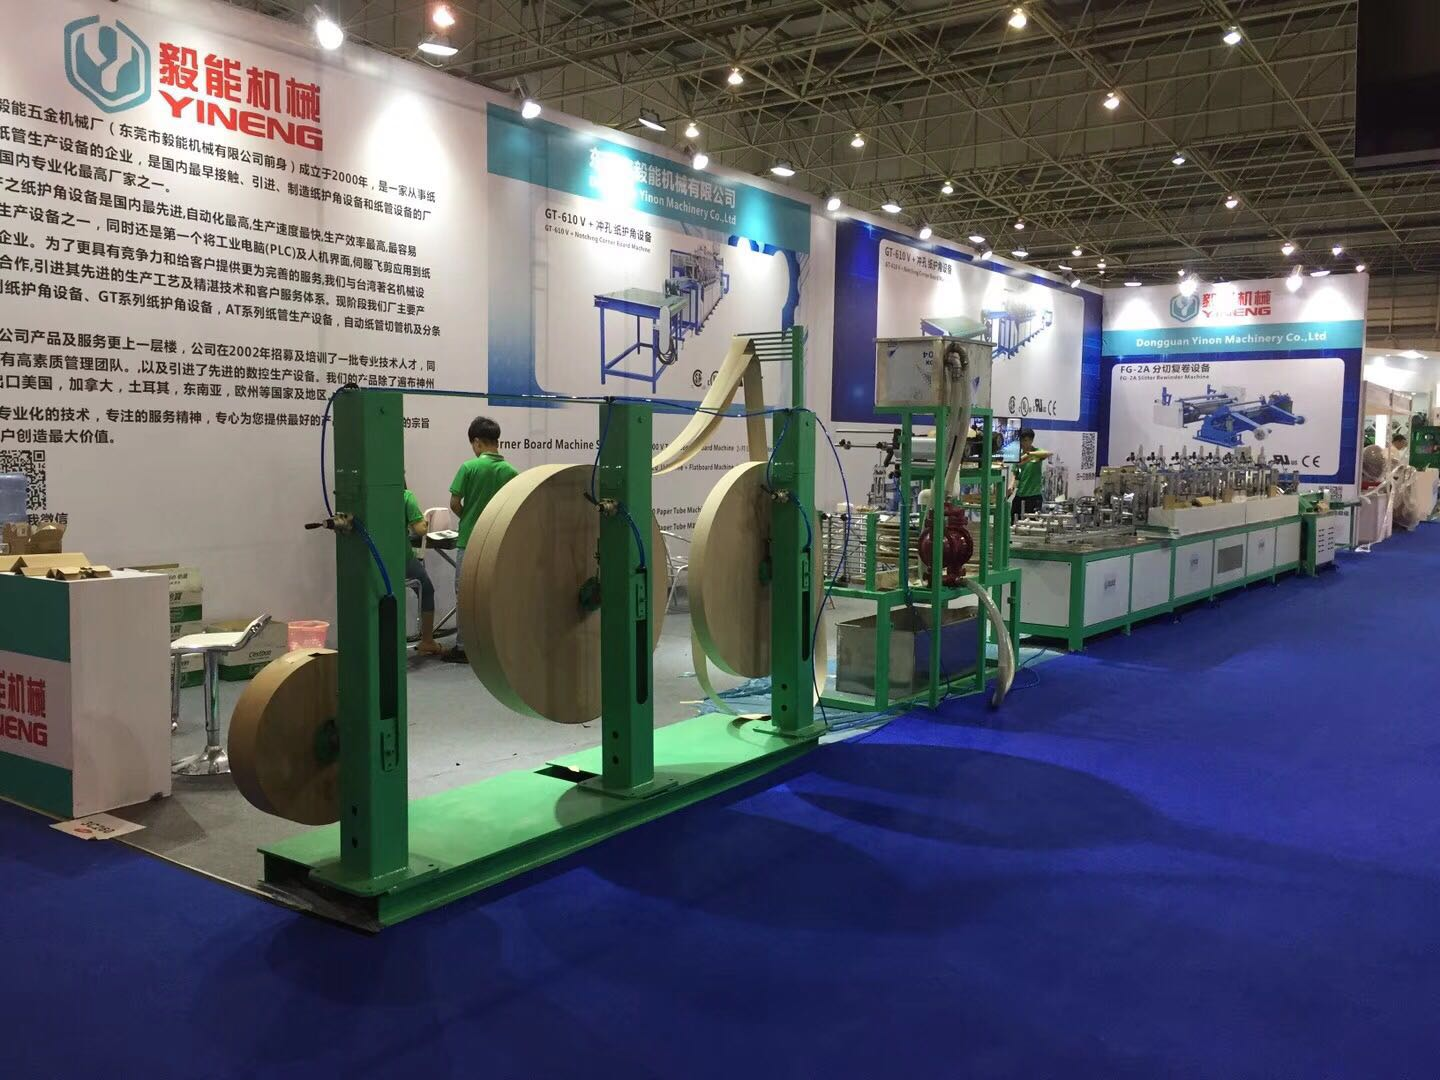 2018 Dongguan Sino Corrugated South Fair